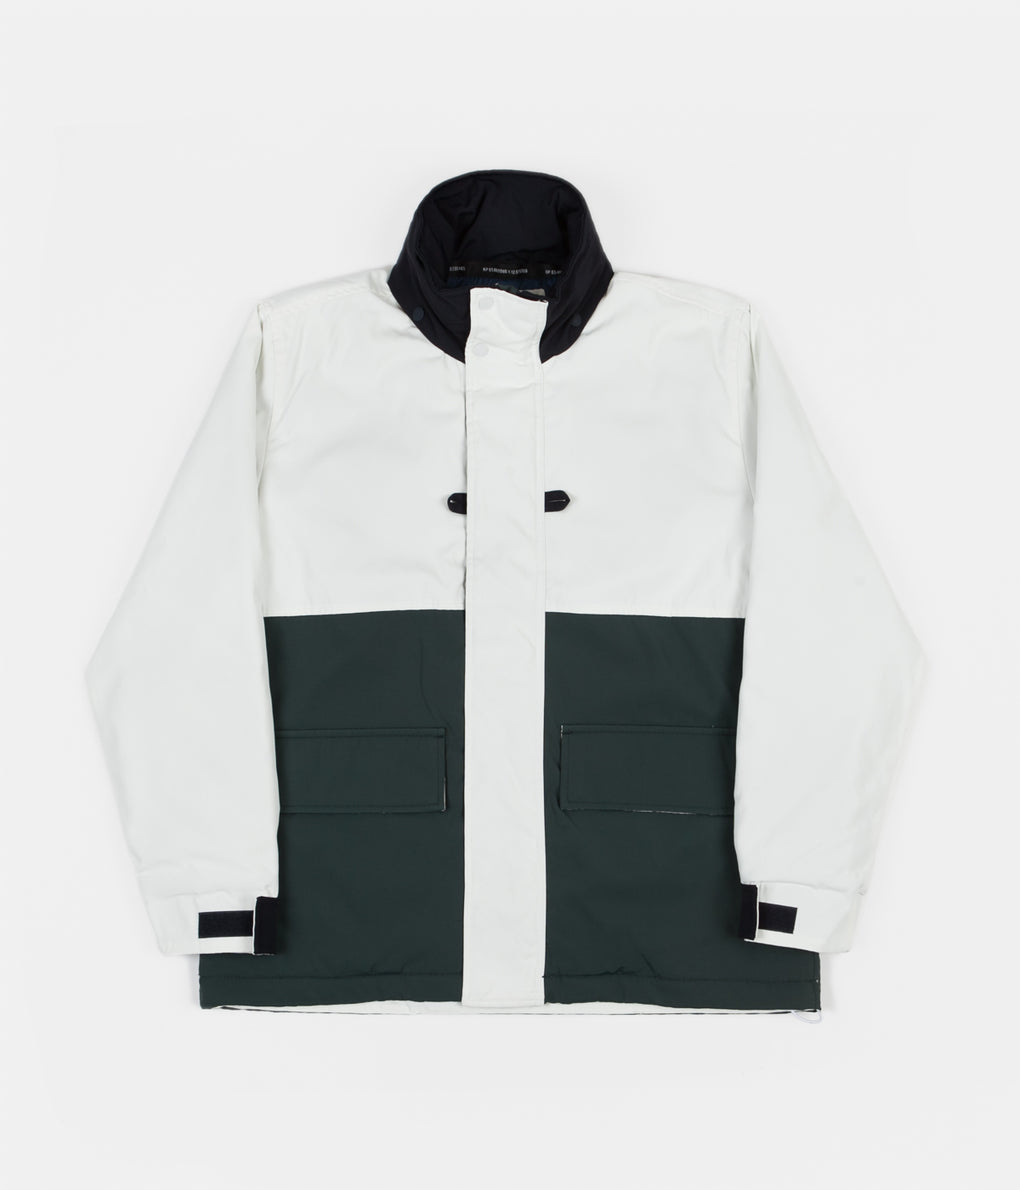 Norse Projects Ystad Nautical Jacket - Spinnaker Green